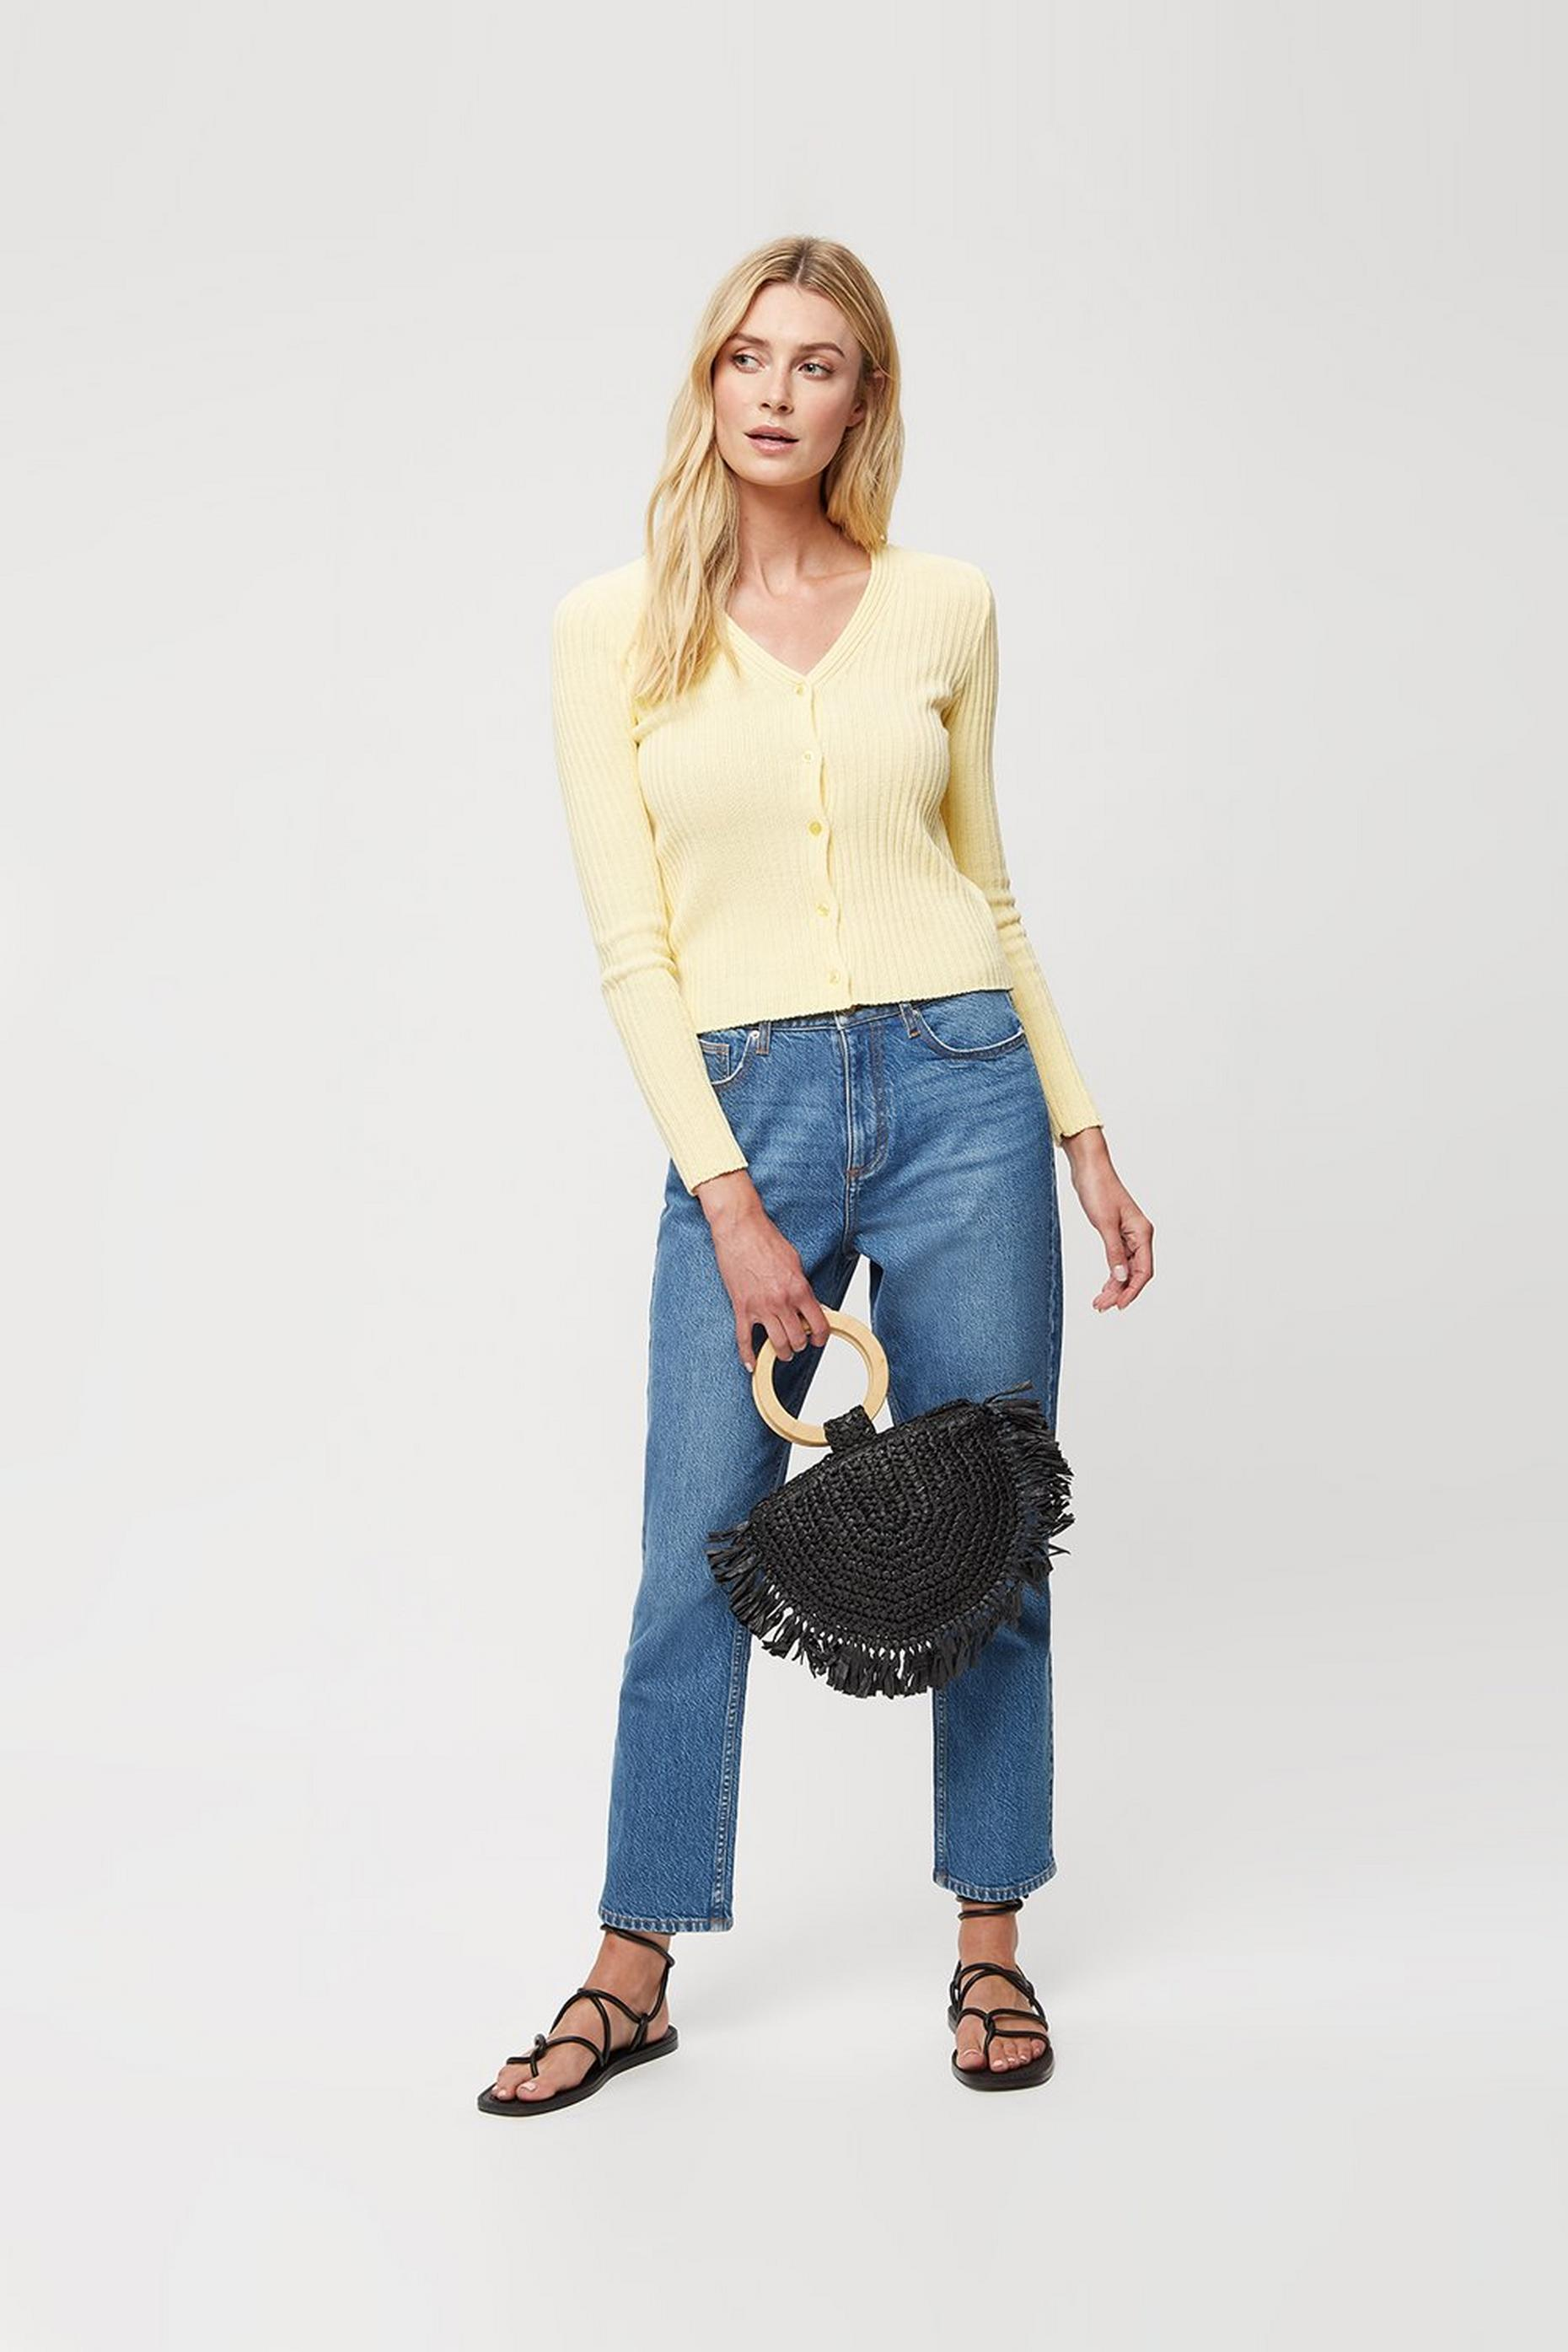 Lemon V Neck Ribbed Cardigan